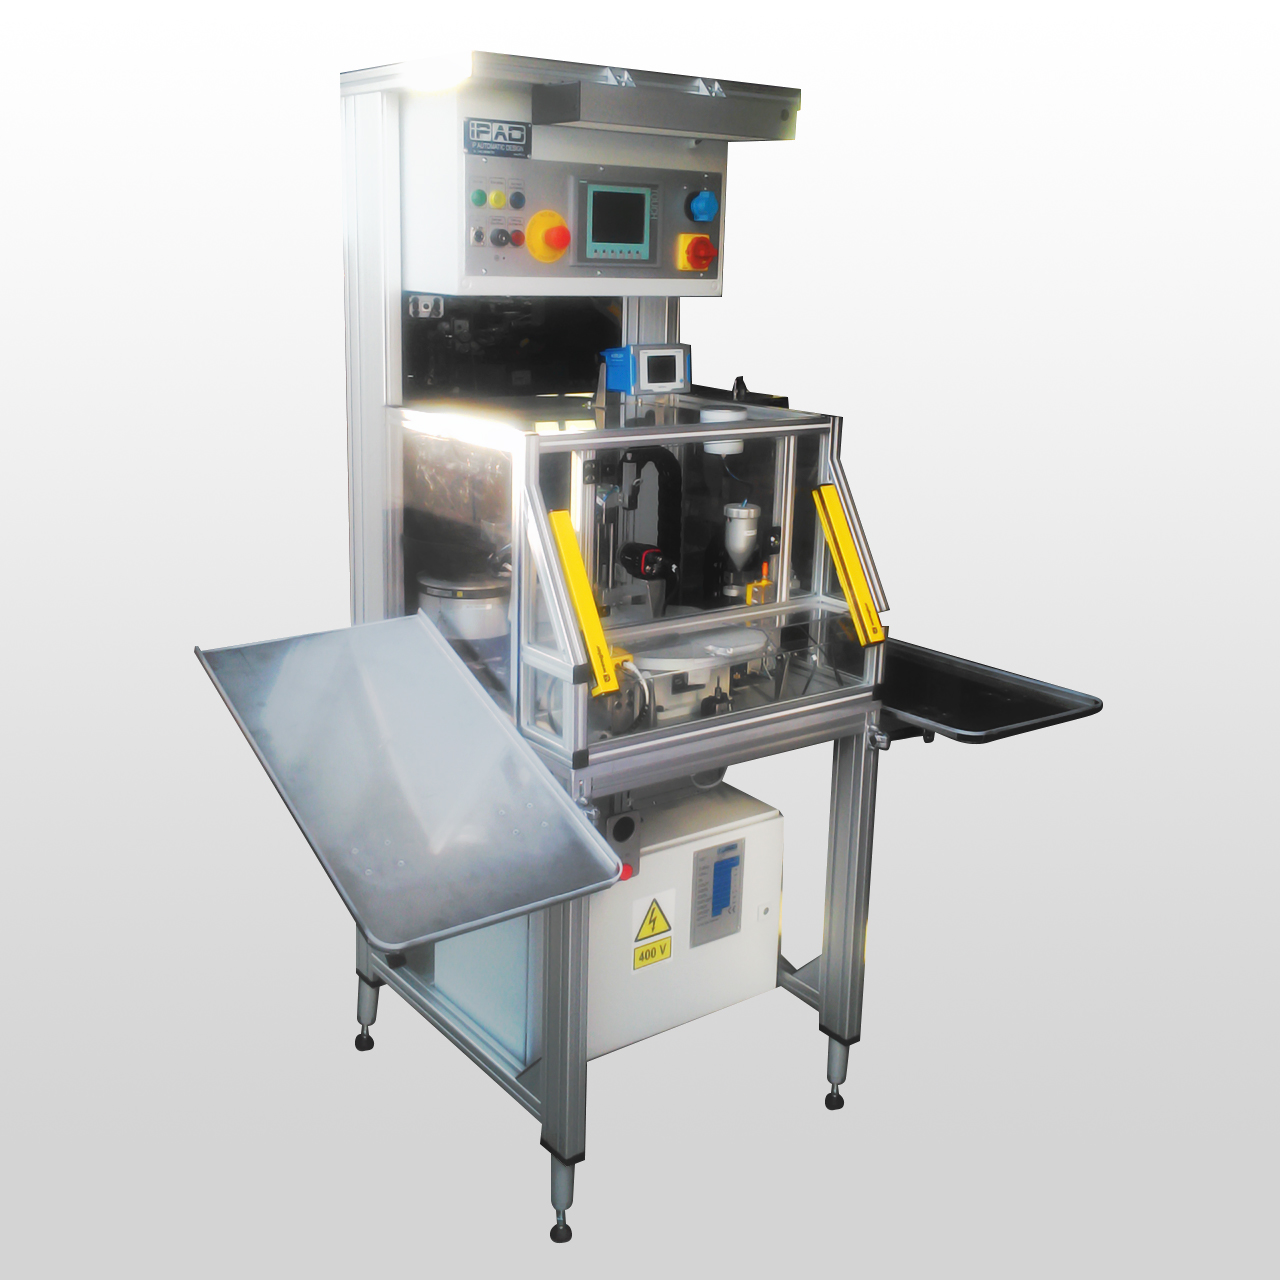 Automatic assembling machine